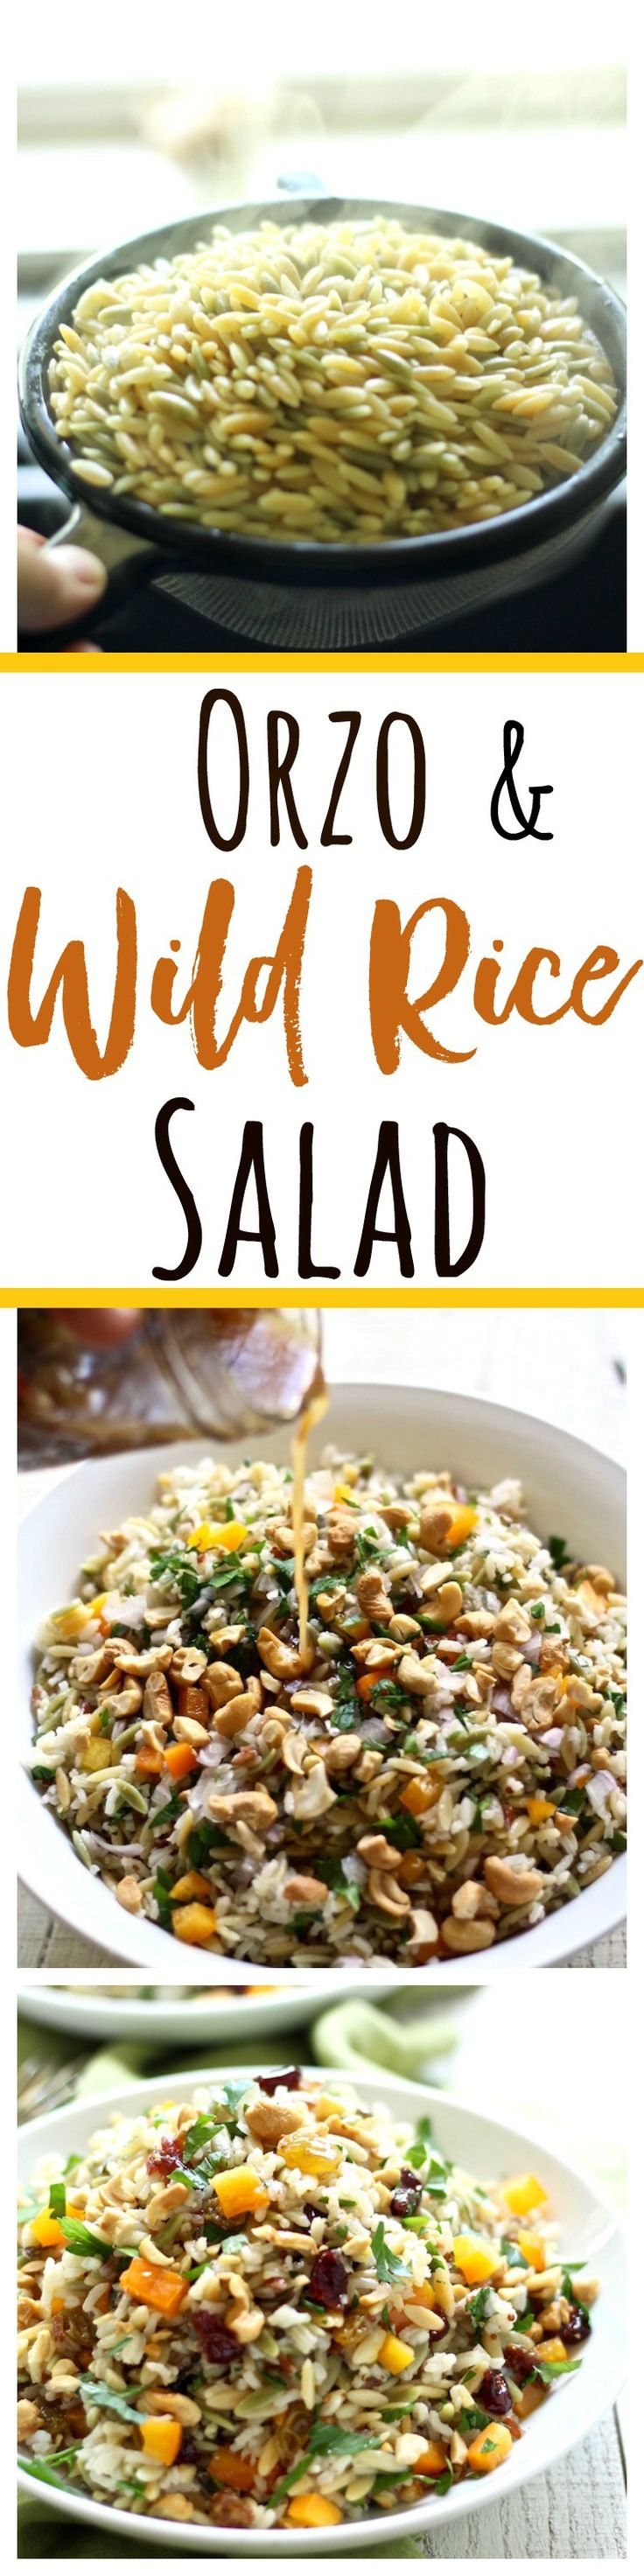 Orzo and wild rice salad is the perfect summer or winter dish. It can be served cold or warm, and be made a day in advance. It's SO scrumptious!